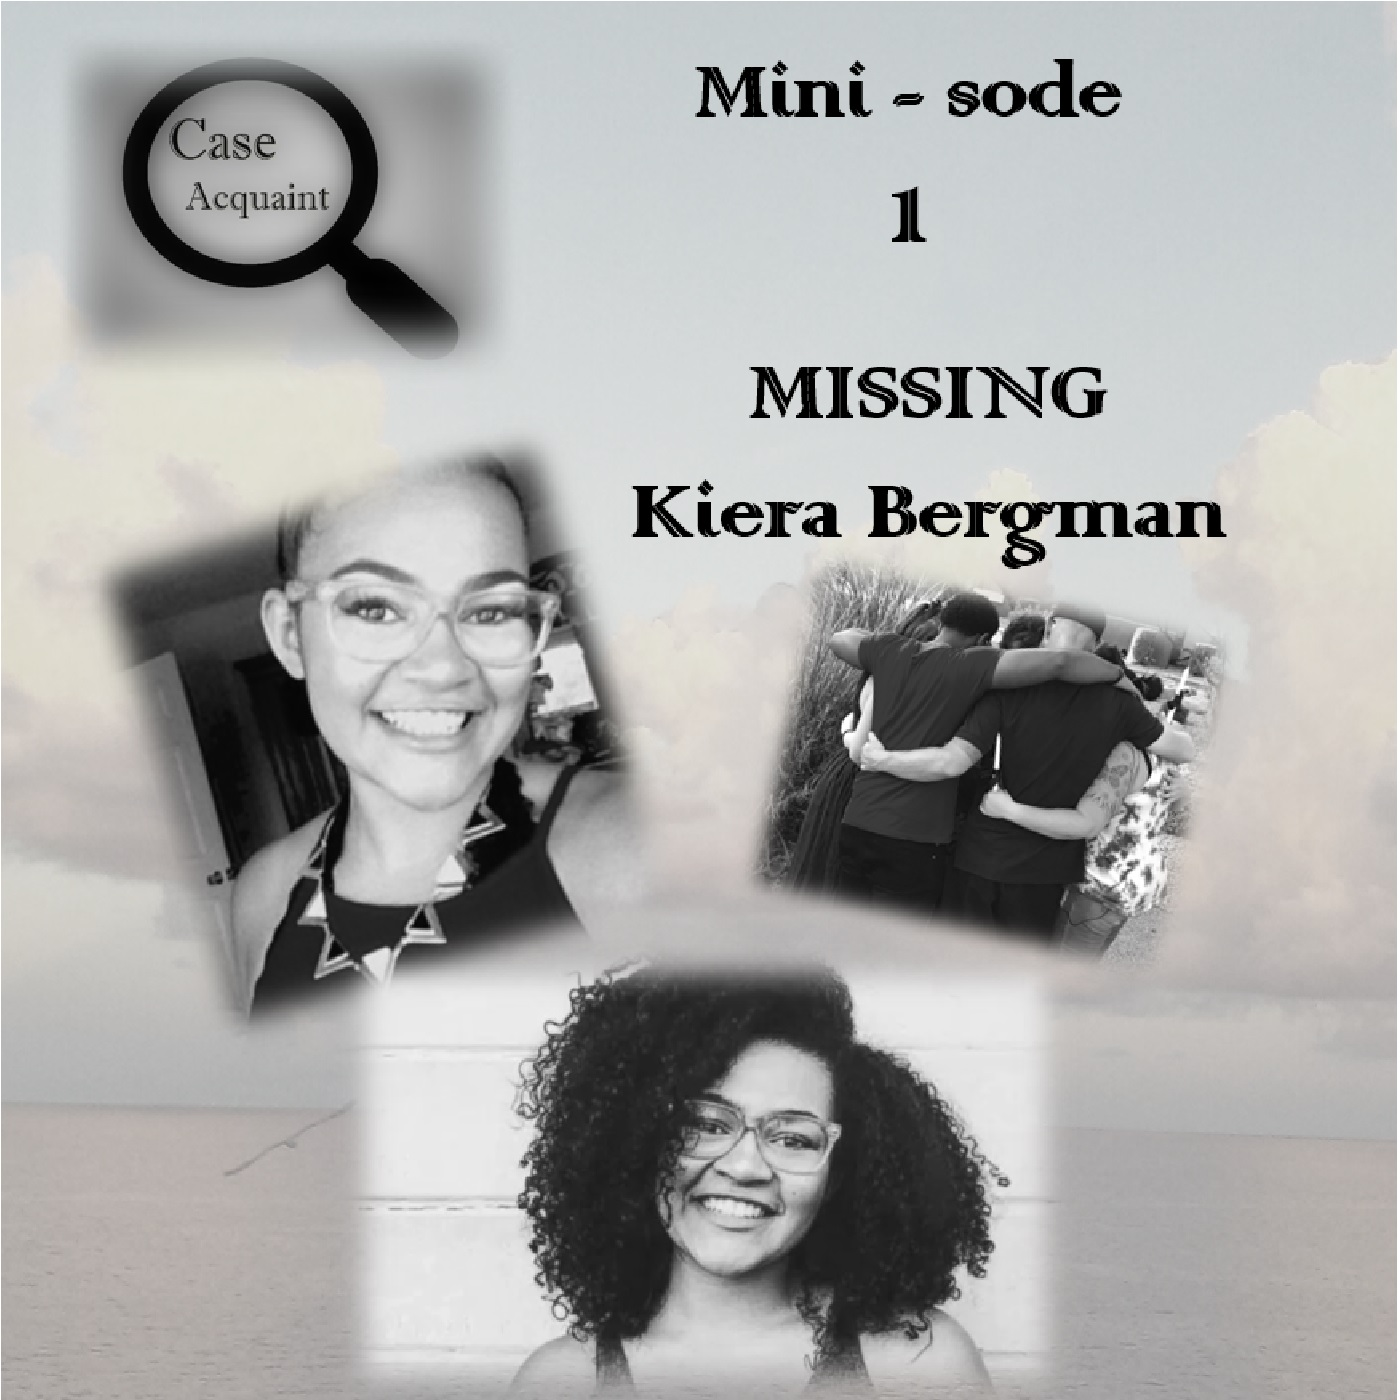 Introducing Minisodes! #1 MISSING Kiera Bergman